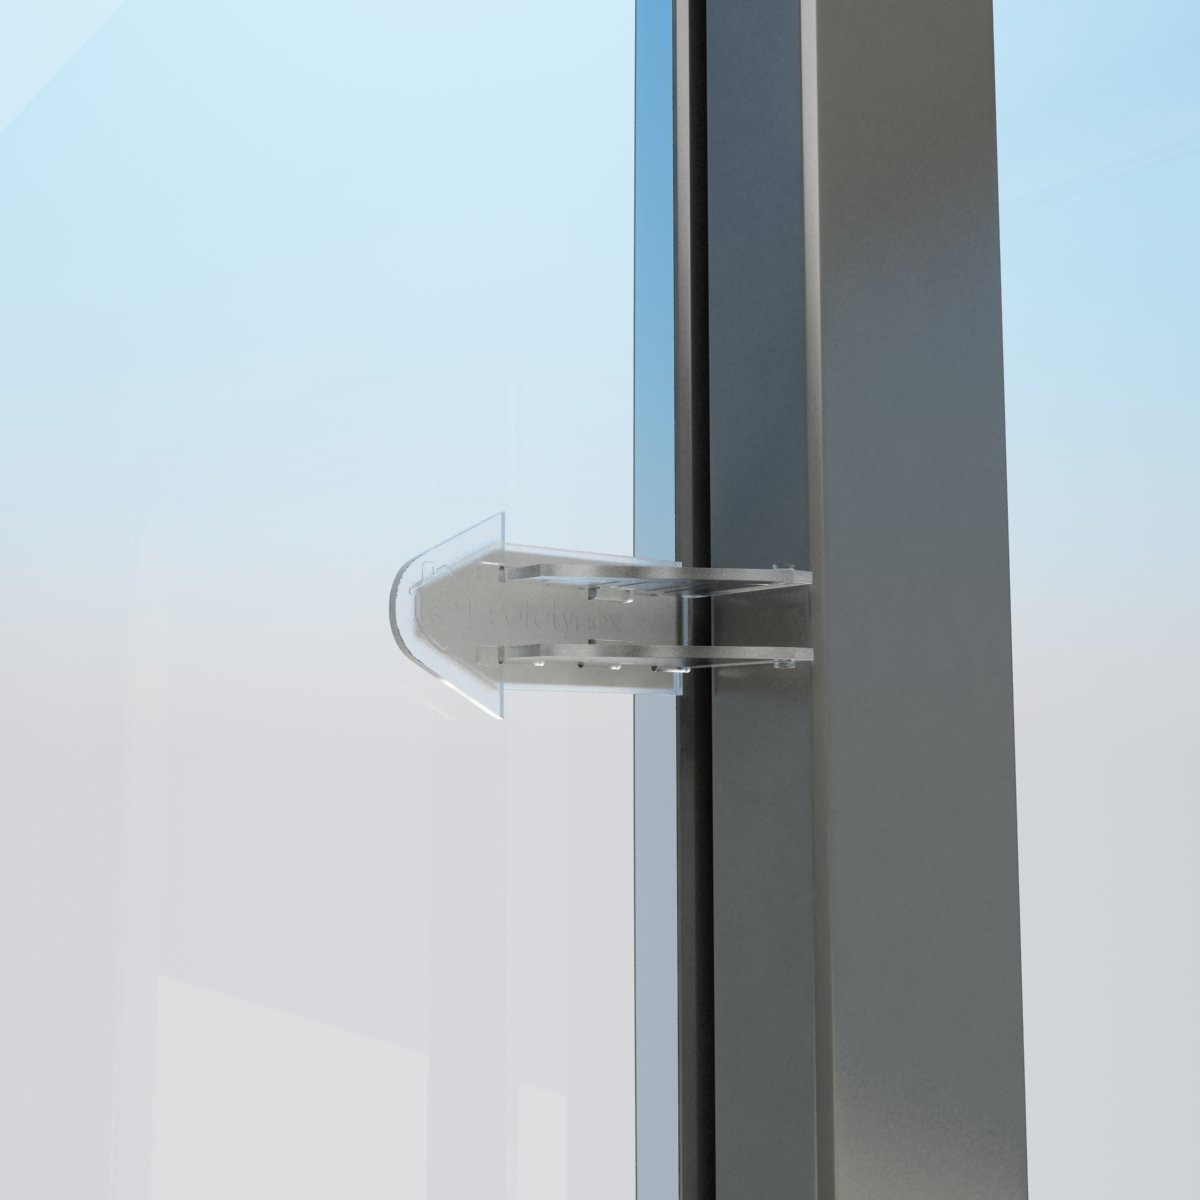 Slide Lock For Glass Door: Safetynex Child Safety Sliding Door Lock For Closets